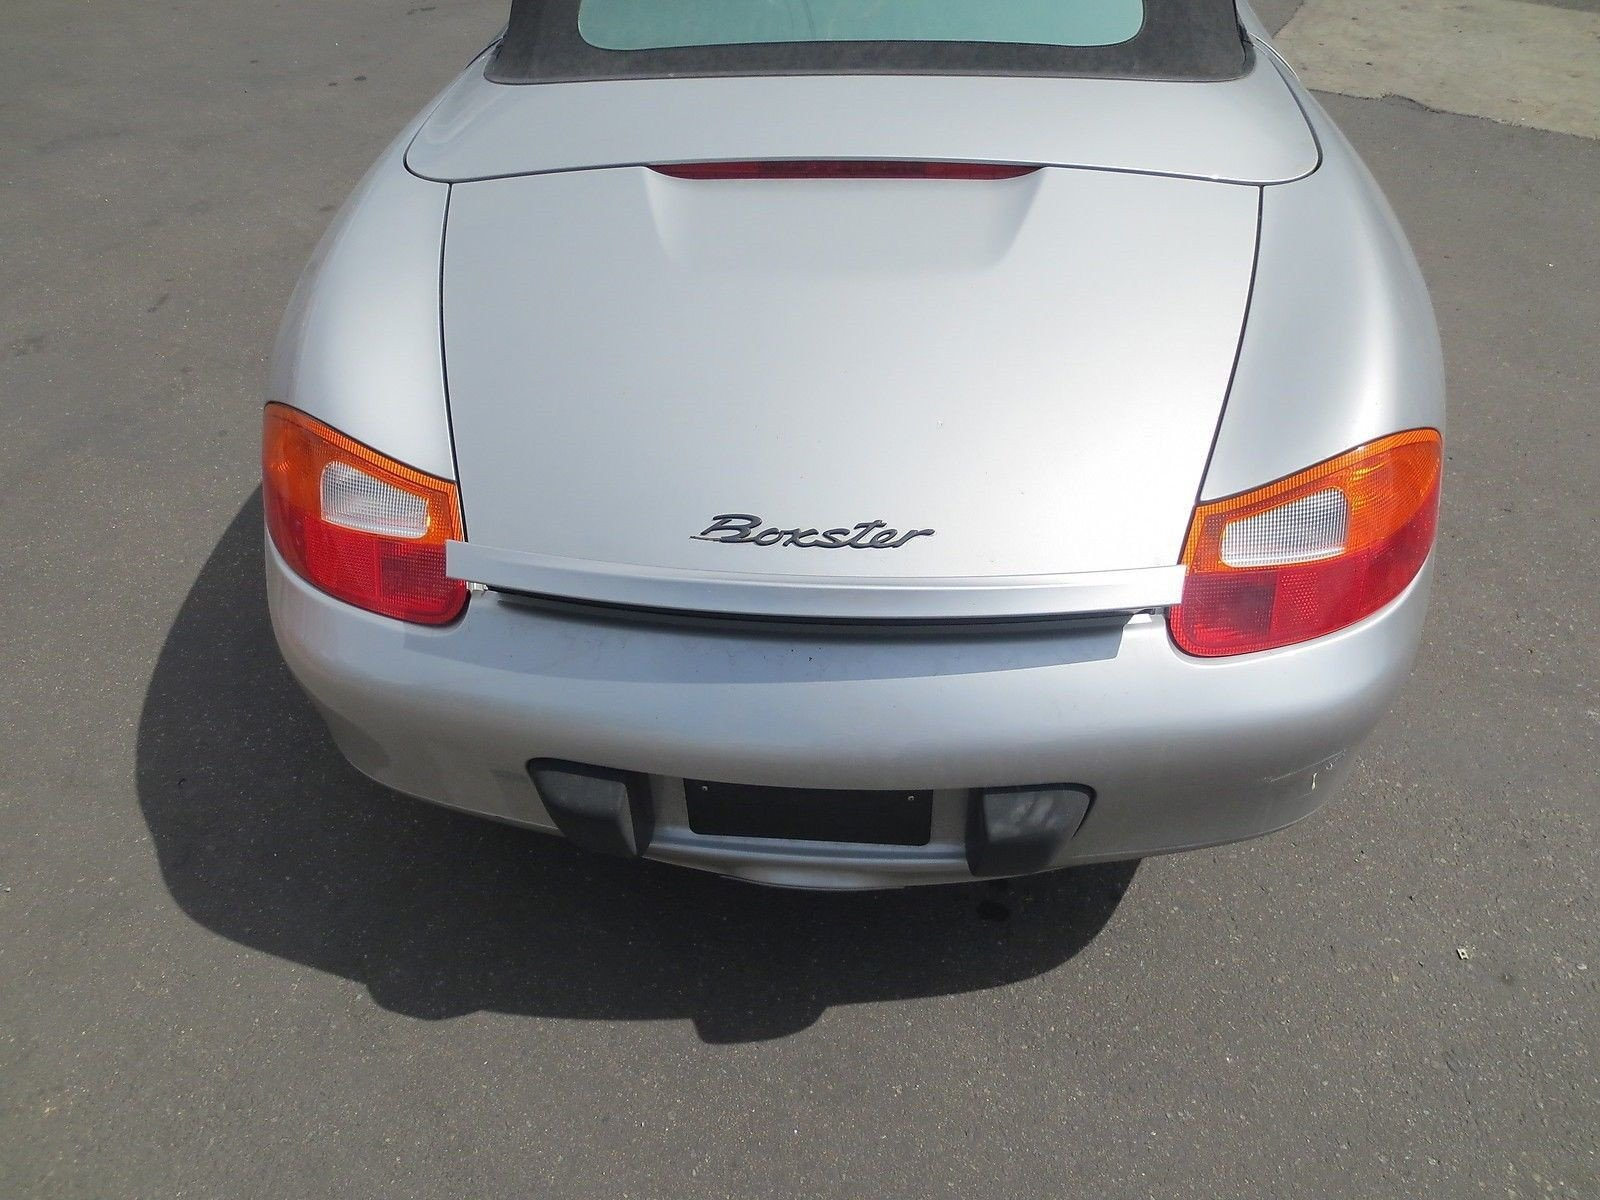 02 Porsche 911 BOXSTER 986 Parting Out car parts 10,955